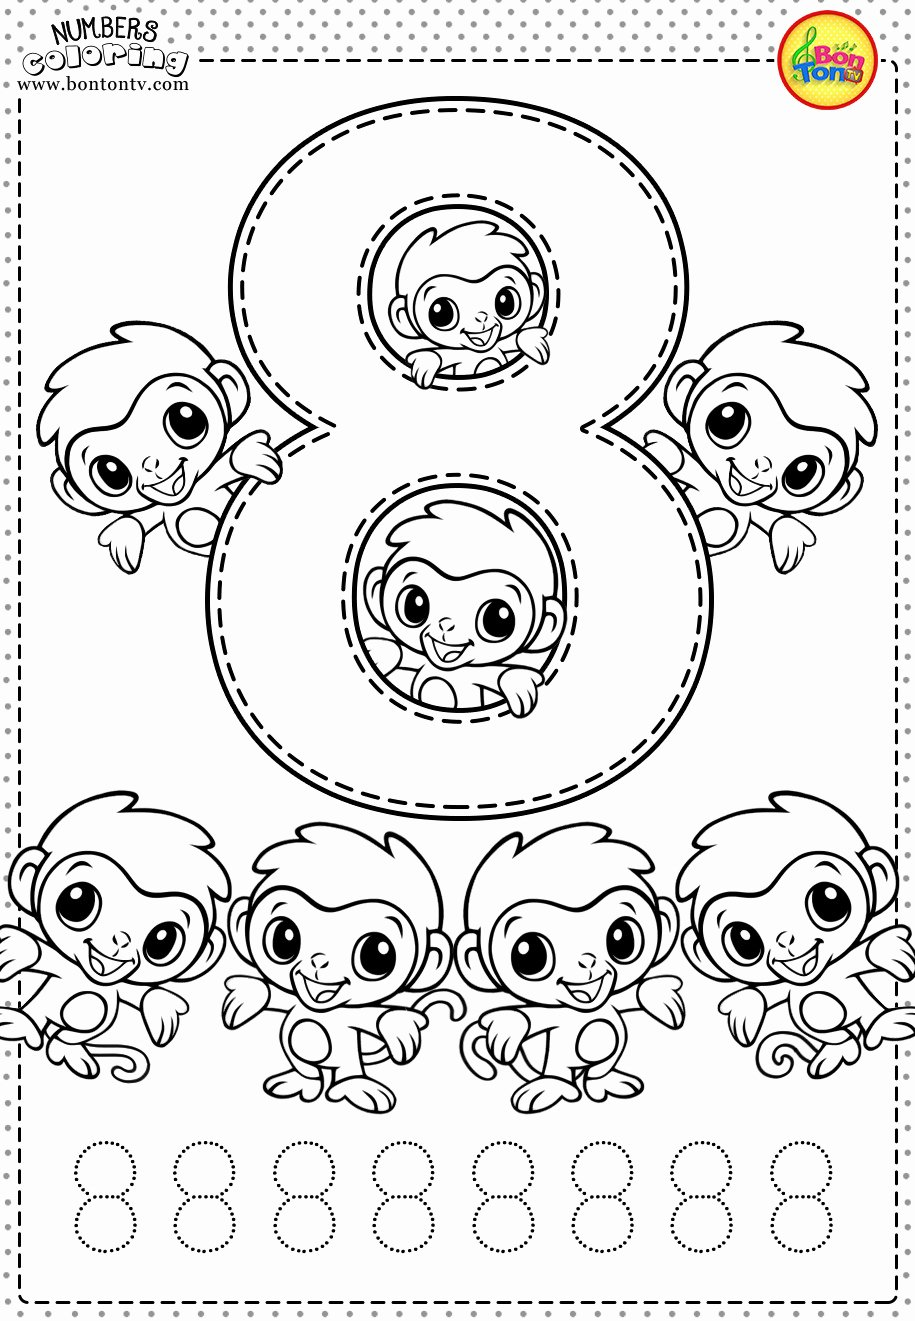 Coloring Worksheets for Preschoolers Awesome Worksheet Free Coloring Worksheets toddlers Schools